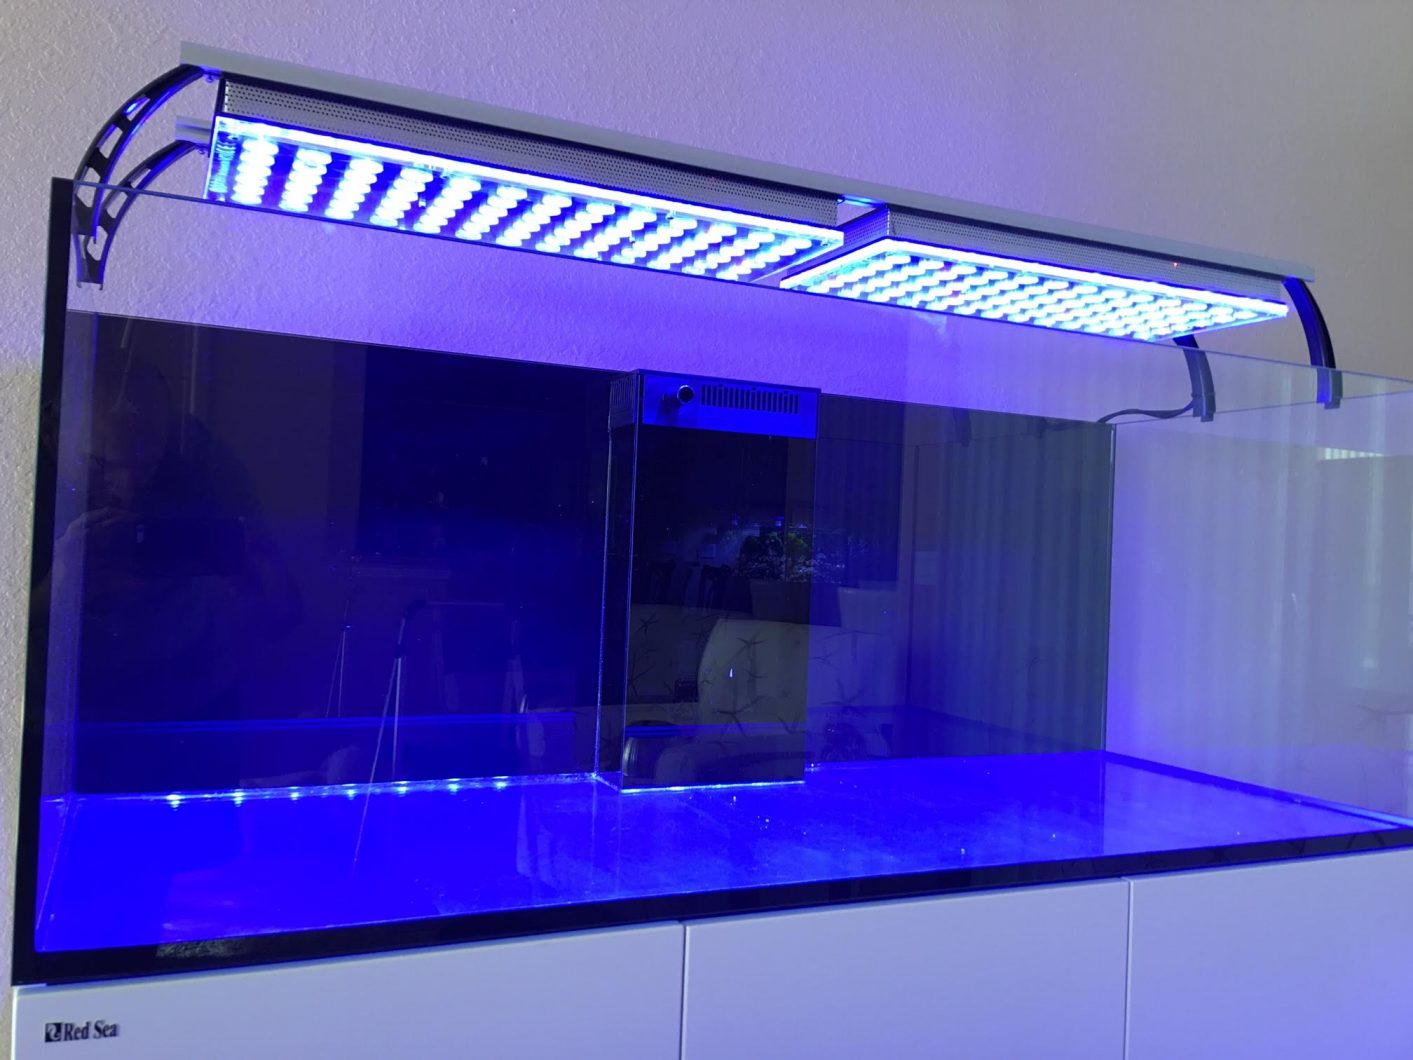 Orphek_Aquarium_LED_mounting వ్యవస్థలు 7